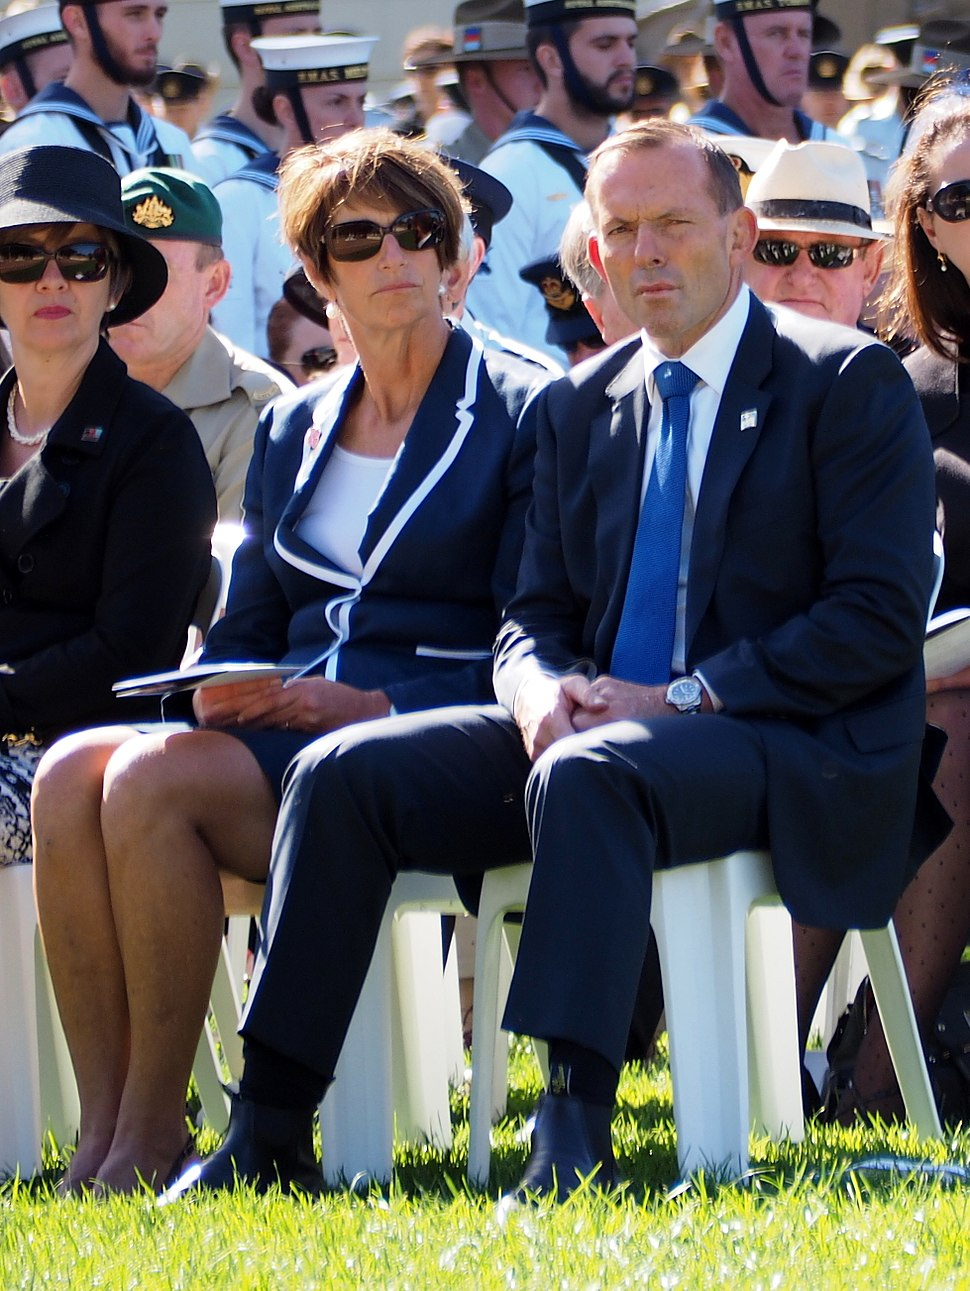 Margie Abbott and Tony Abbott at the Canberra Operation Slipper Welcome Home Ceremony in March 2015